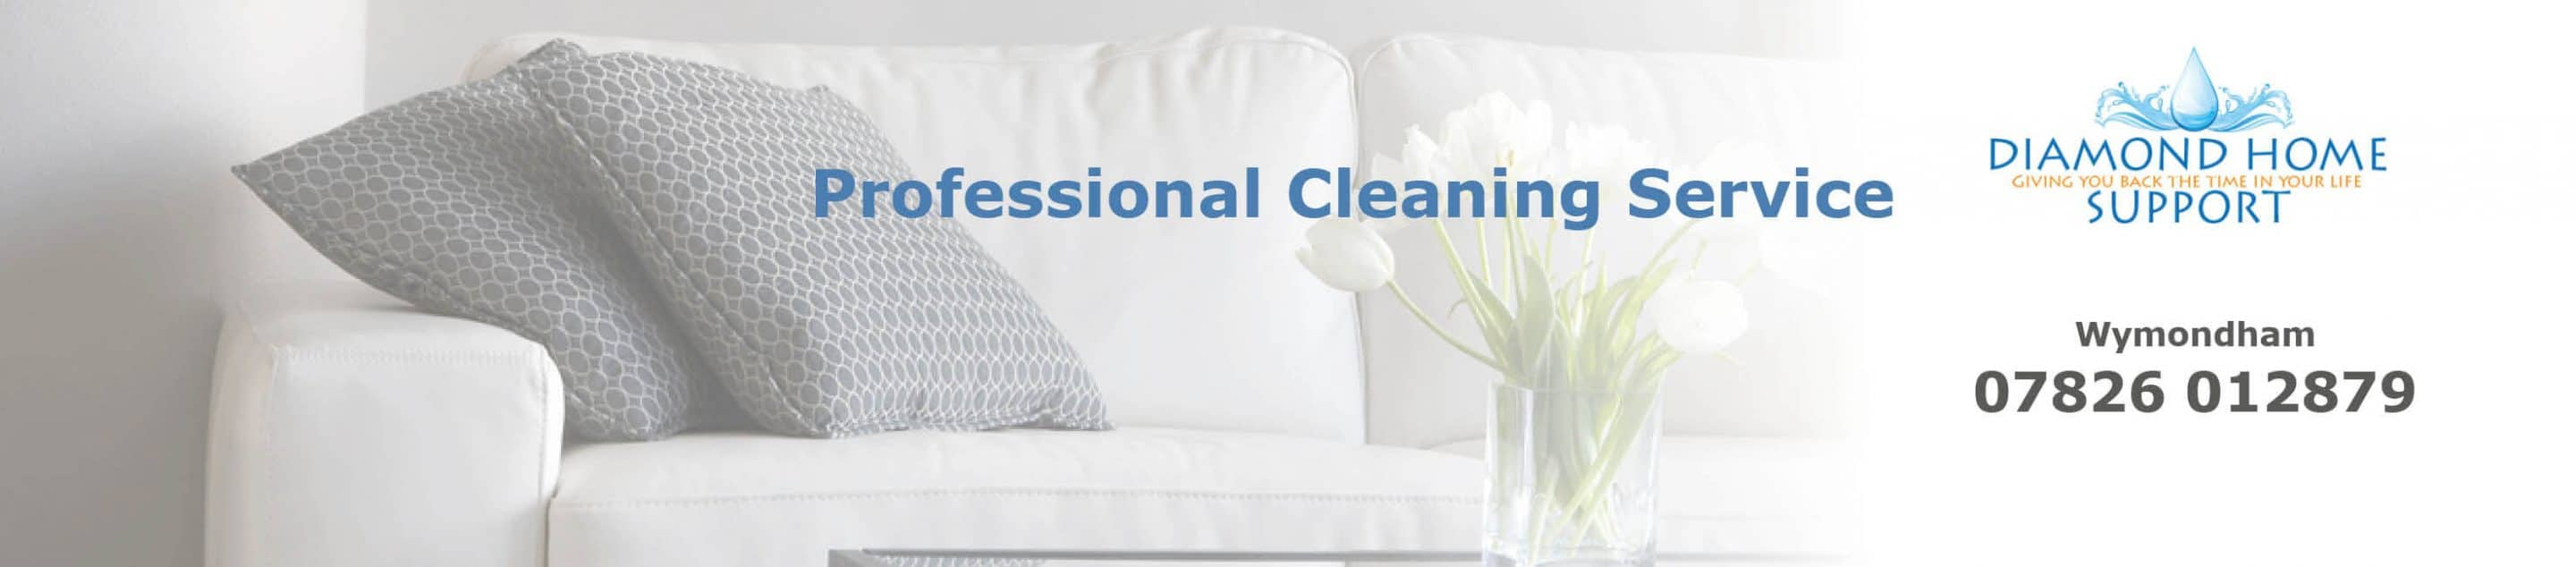 Cleaners in Wymondham